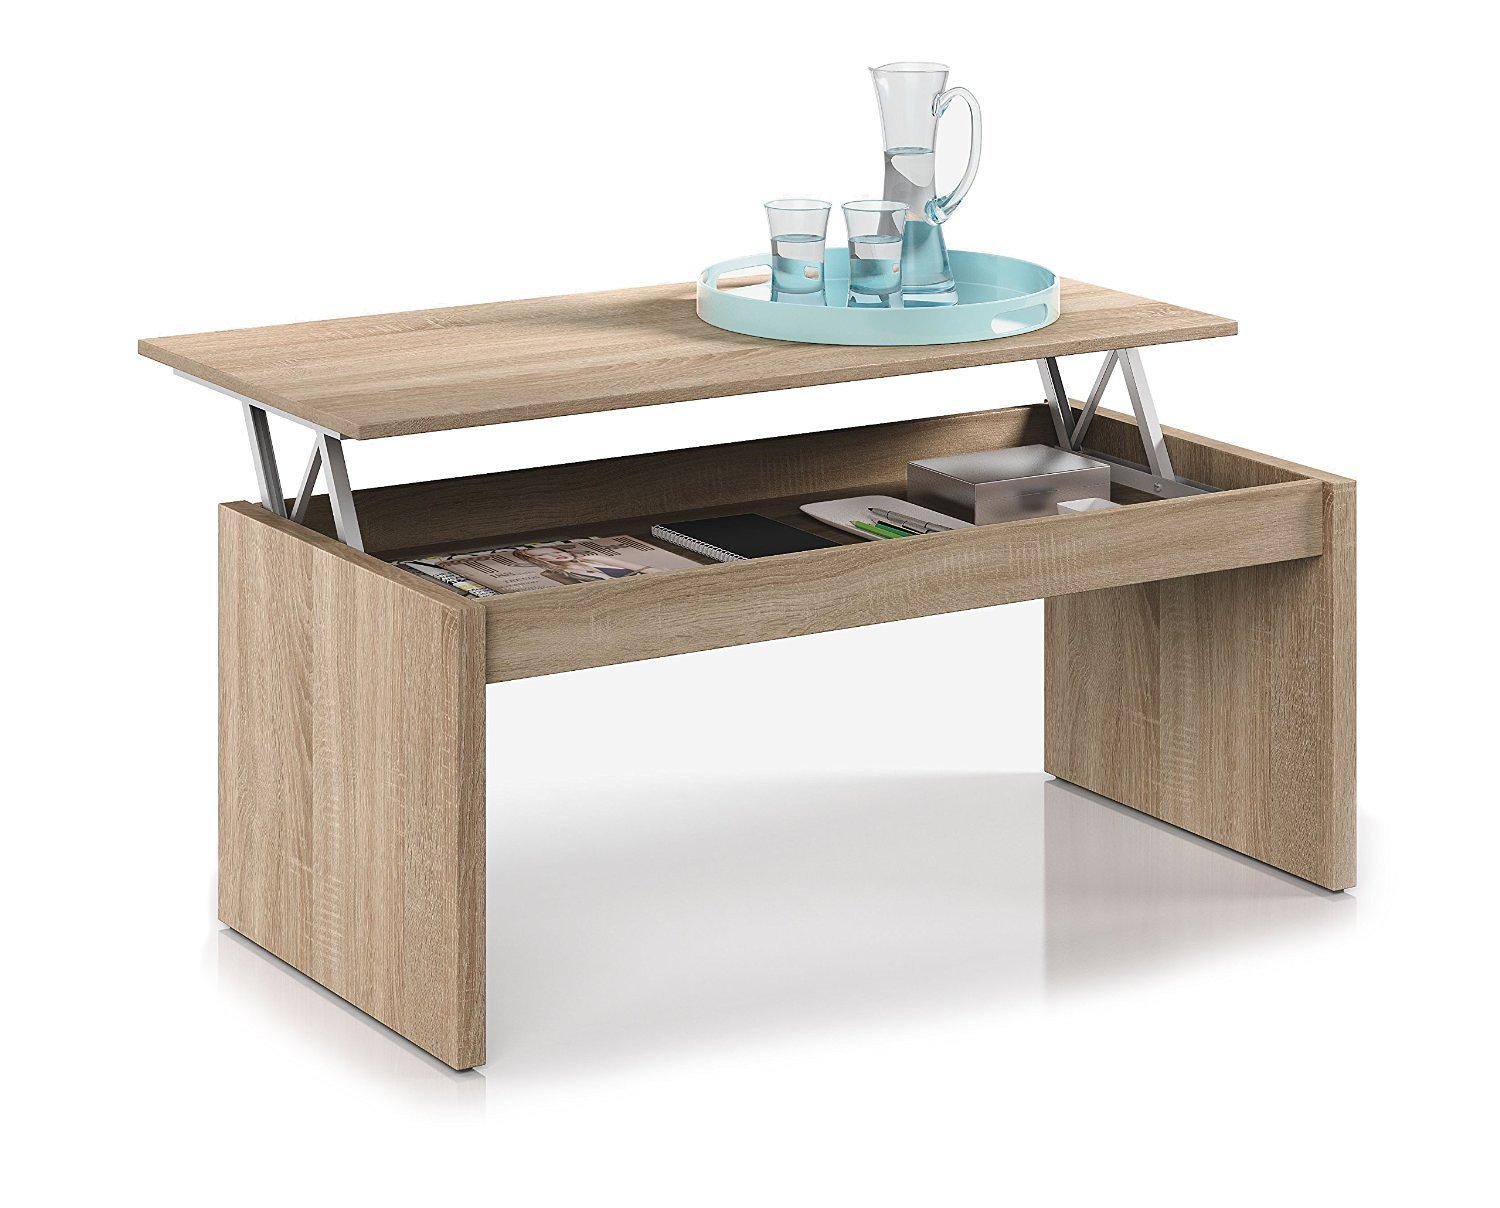 Fabulous habitdesign f table basse chne naturel avec - Table basse modulable ikea ...